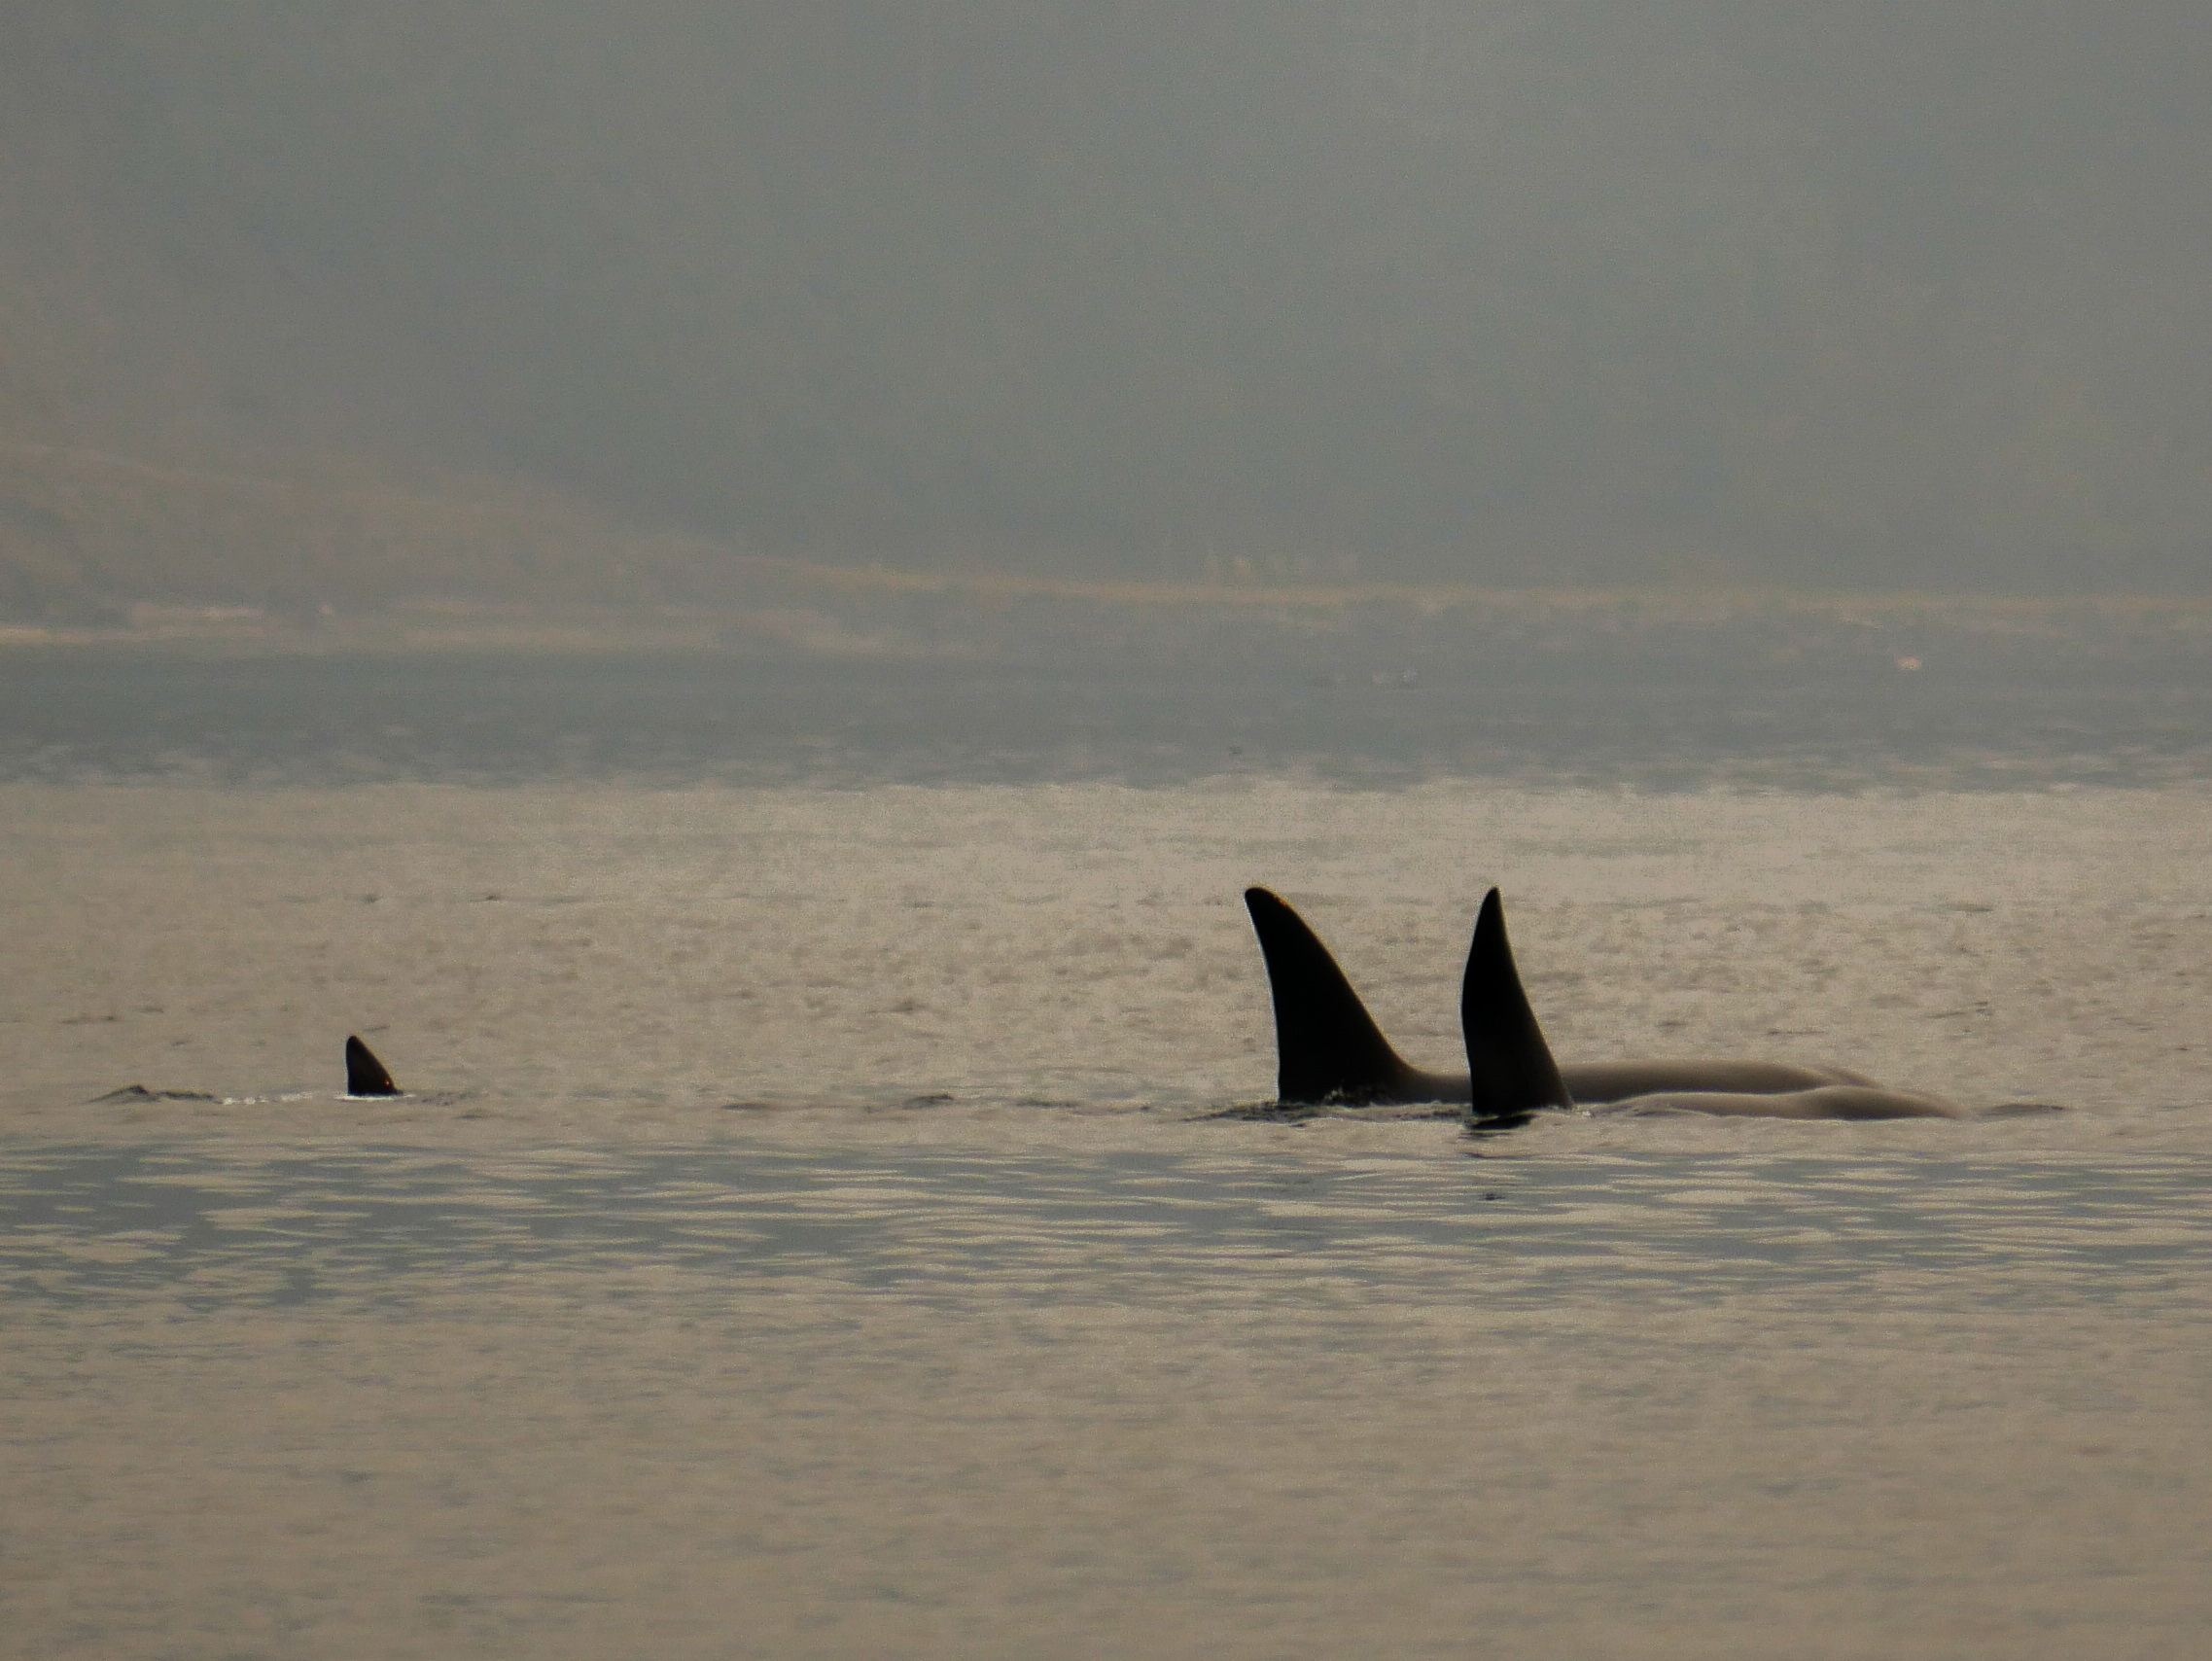 Tumbo (T2C2) on the far right with his mom T2C. You can see evidence of the scoliosis through the dorsal fin bends. Photo by Val Watson.